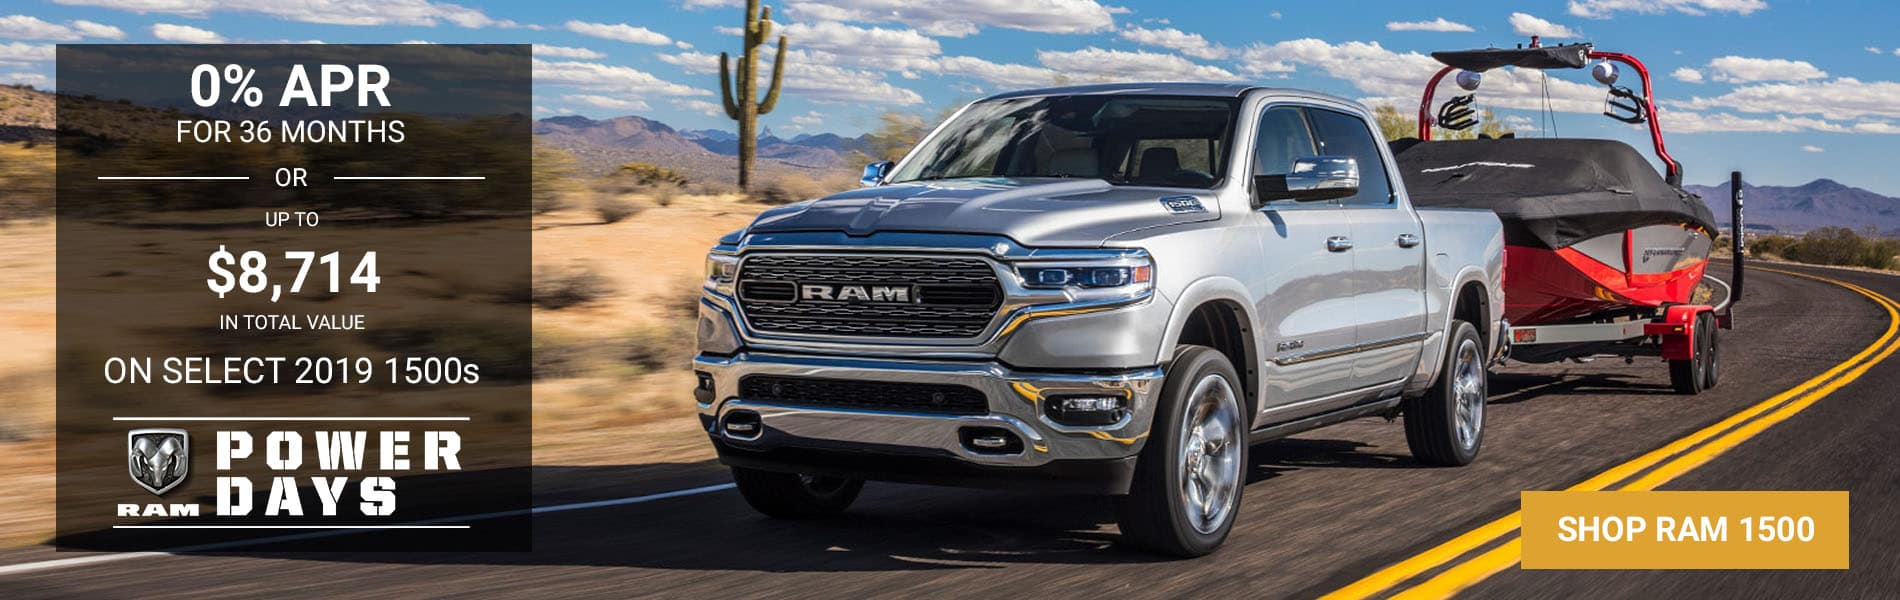 0% APR for 36 months or up to $8,714 off MSRP on select 2019 1500s